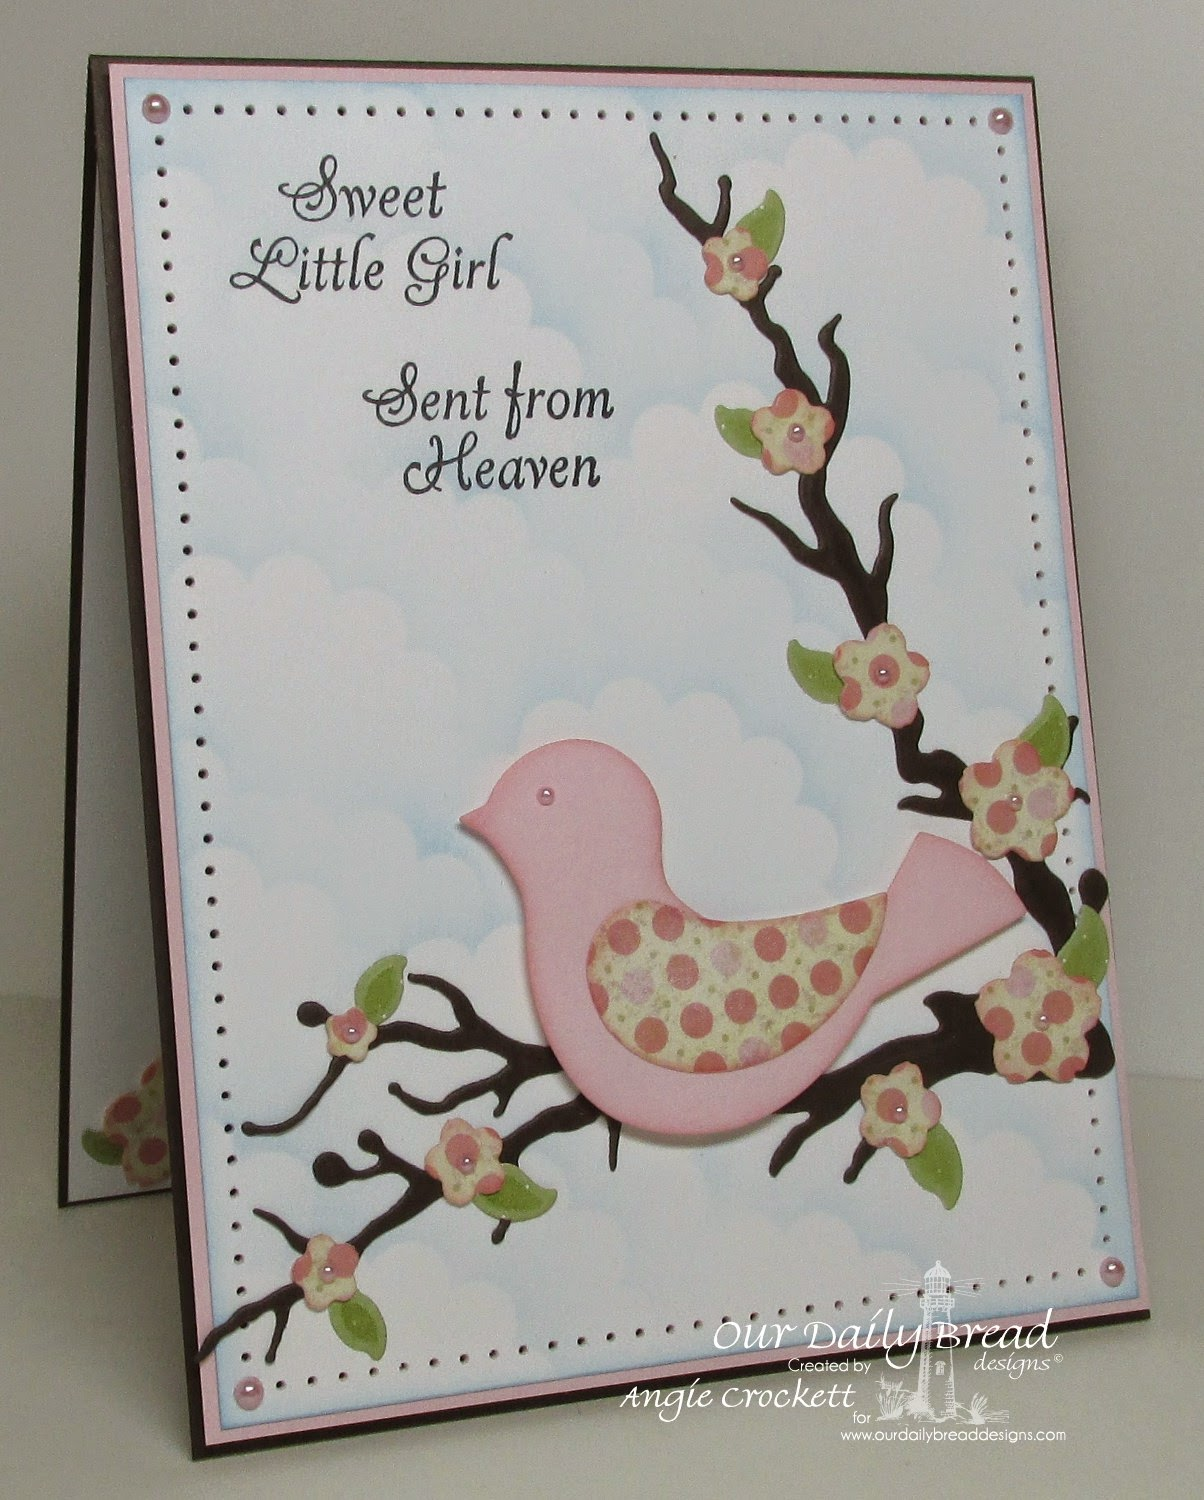 ODBD Little Girls, ODBD Blushing Rose Paper Collection, Card Designer Angie Crockett